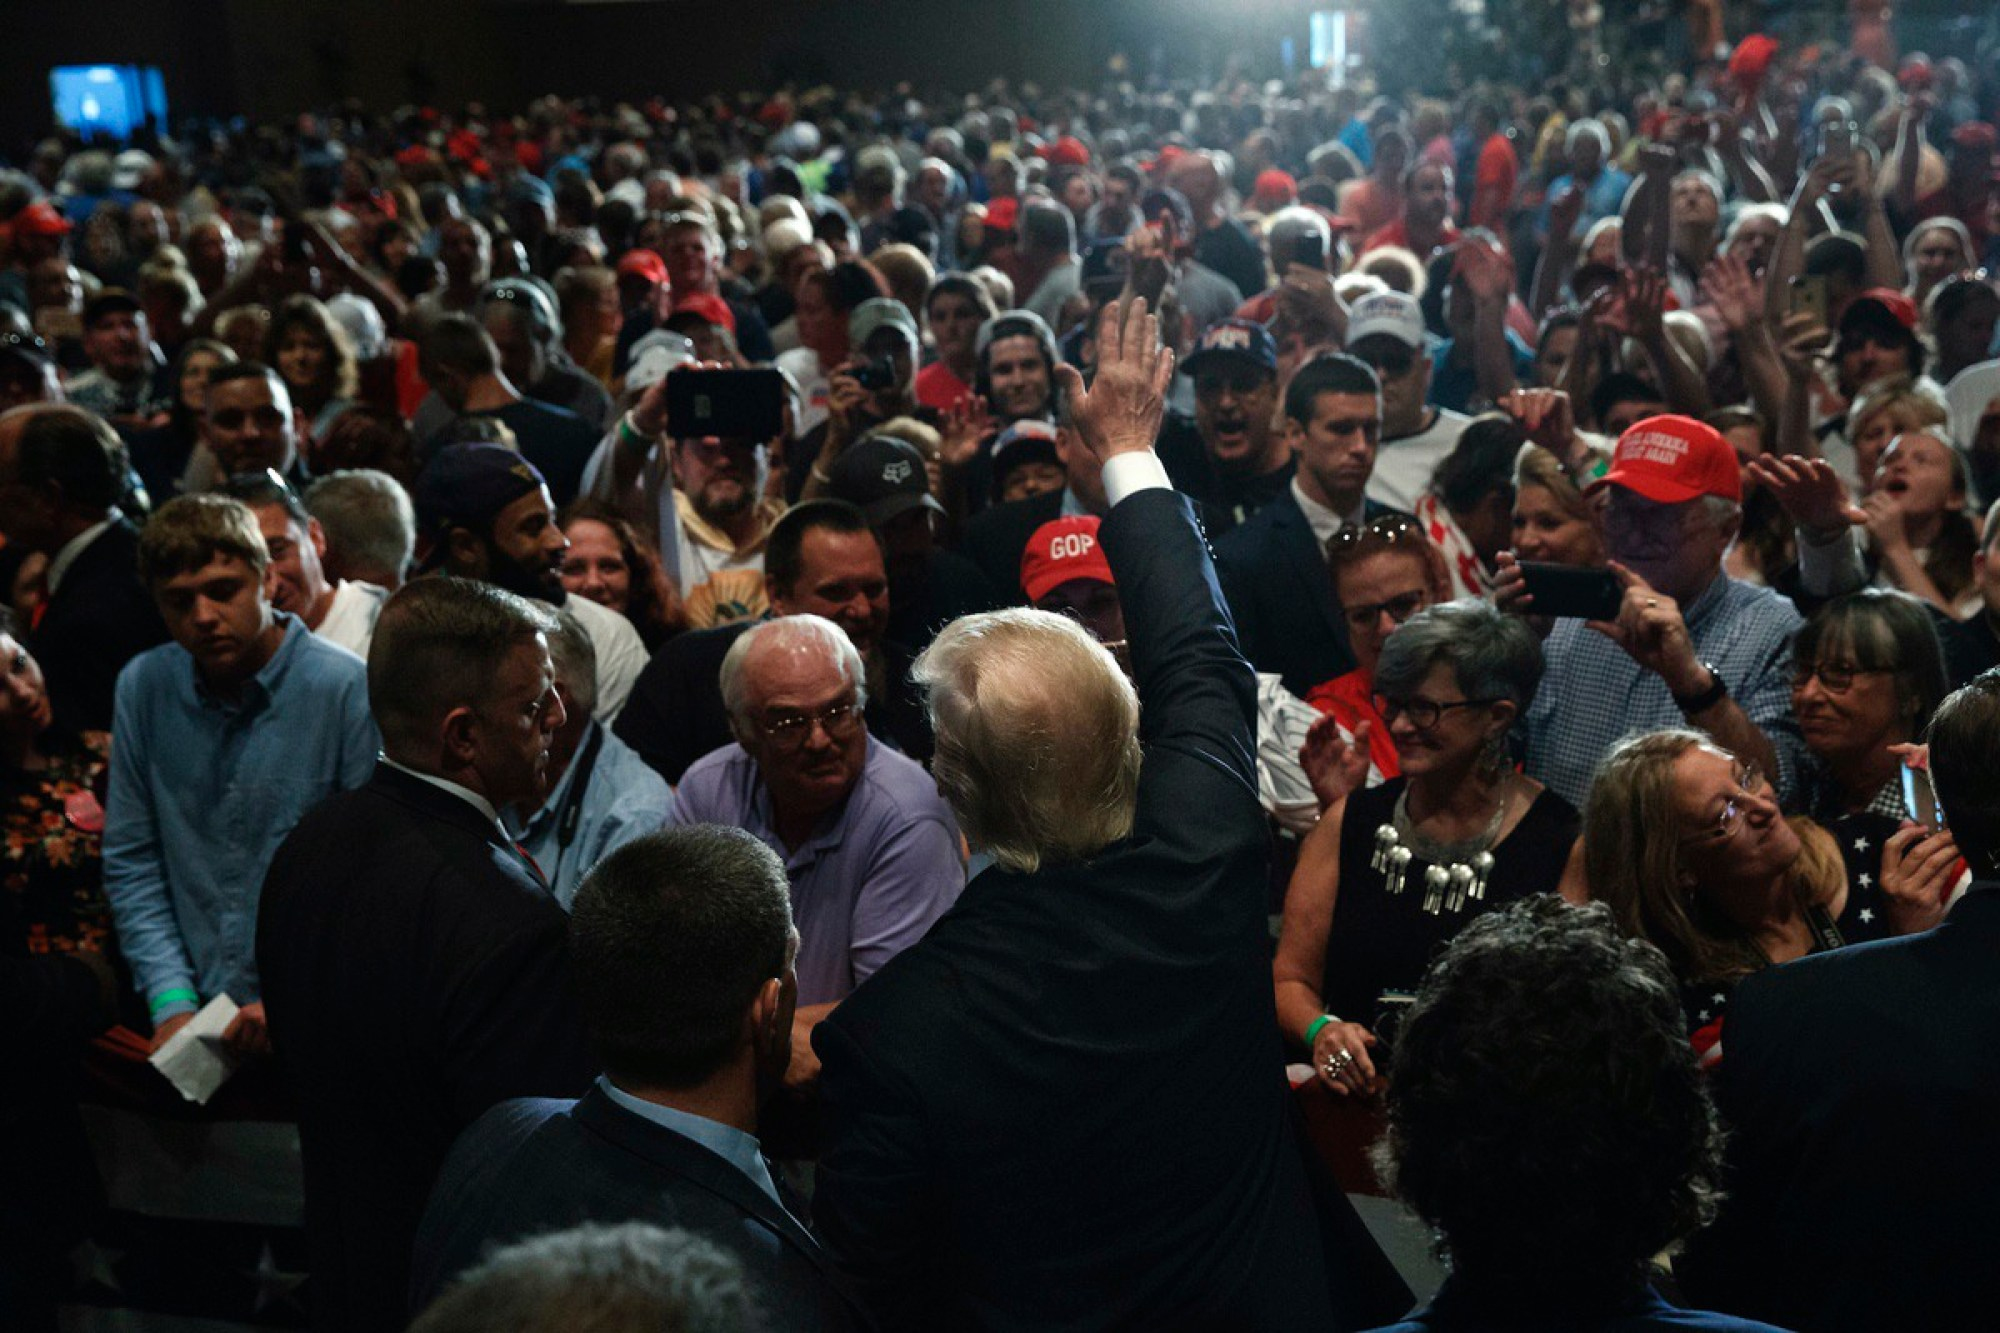 Donald Trump waves as he leaves a campaign rally, Friday, Aug. 12, 2016, in Altoona, Pa. (AP Photo/Evan Vucci)